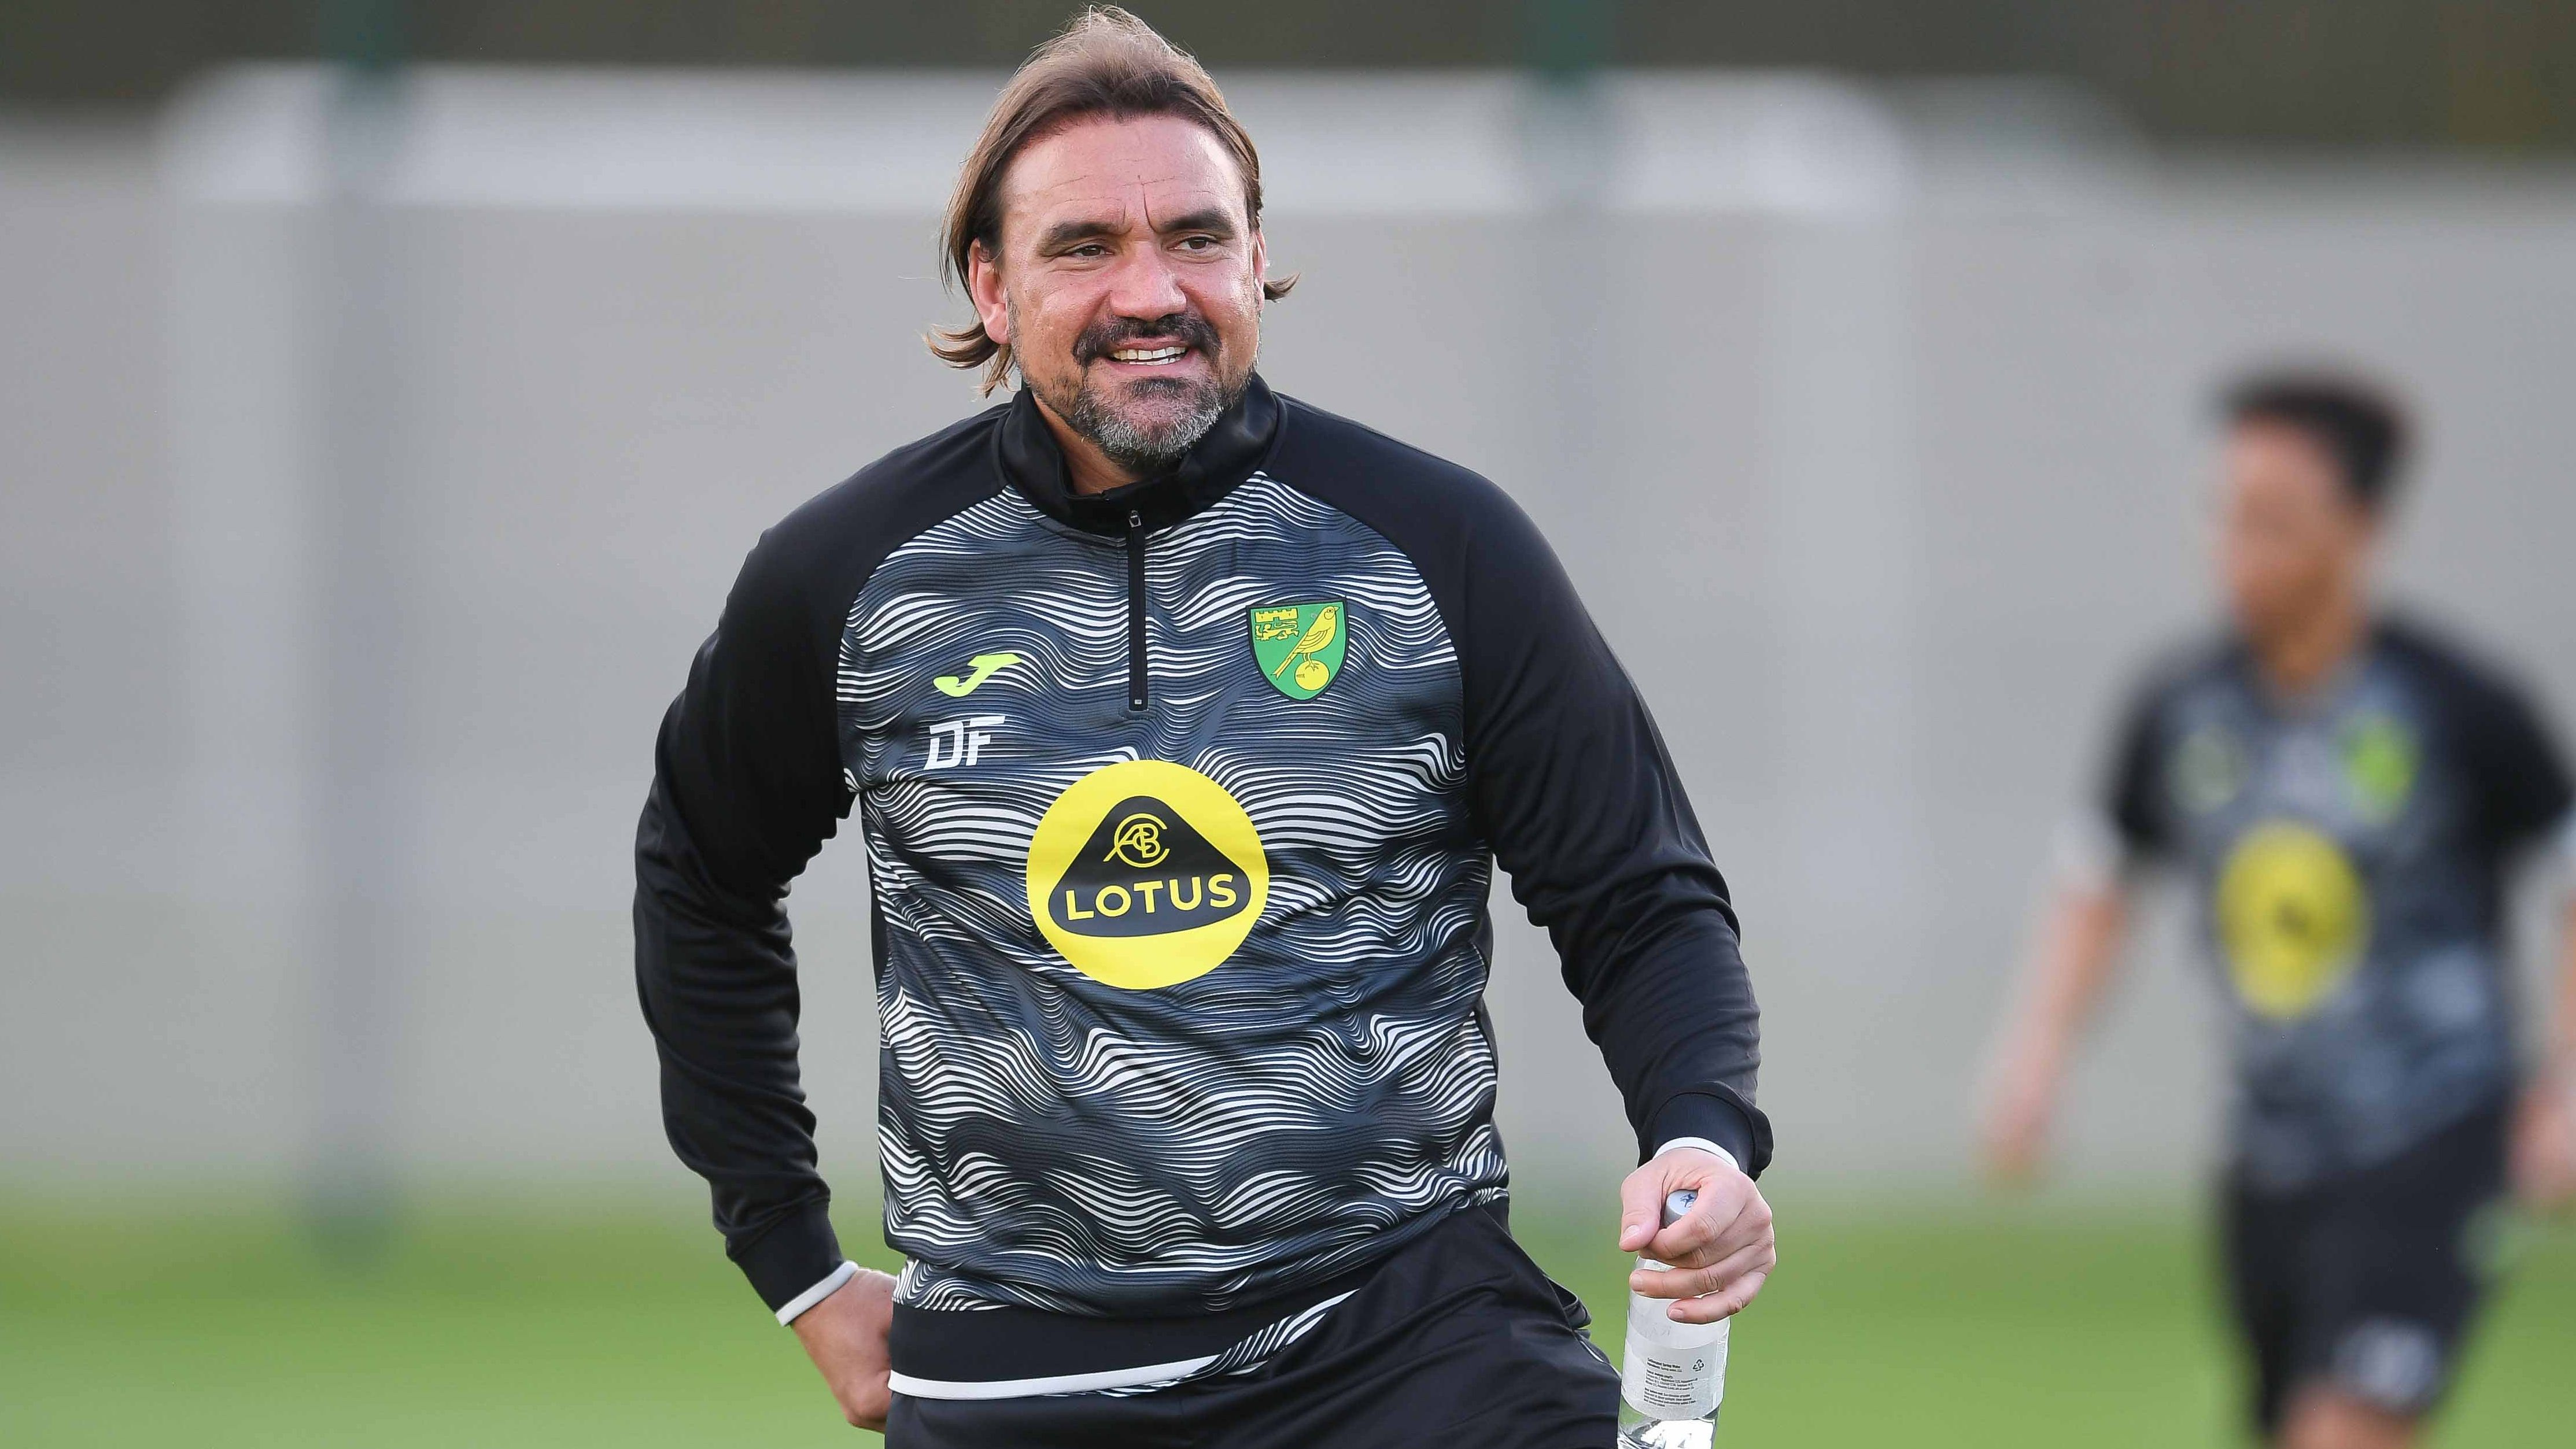 daniel-farke-it-is-a-bit-tricky-there-will-be-some-late-decisions